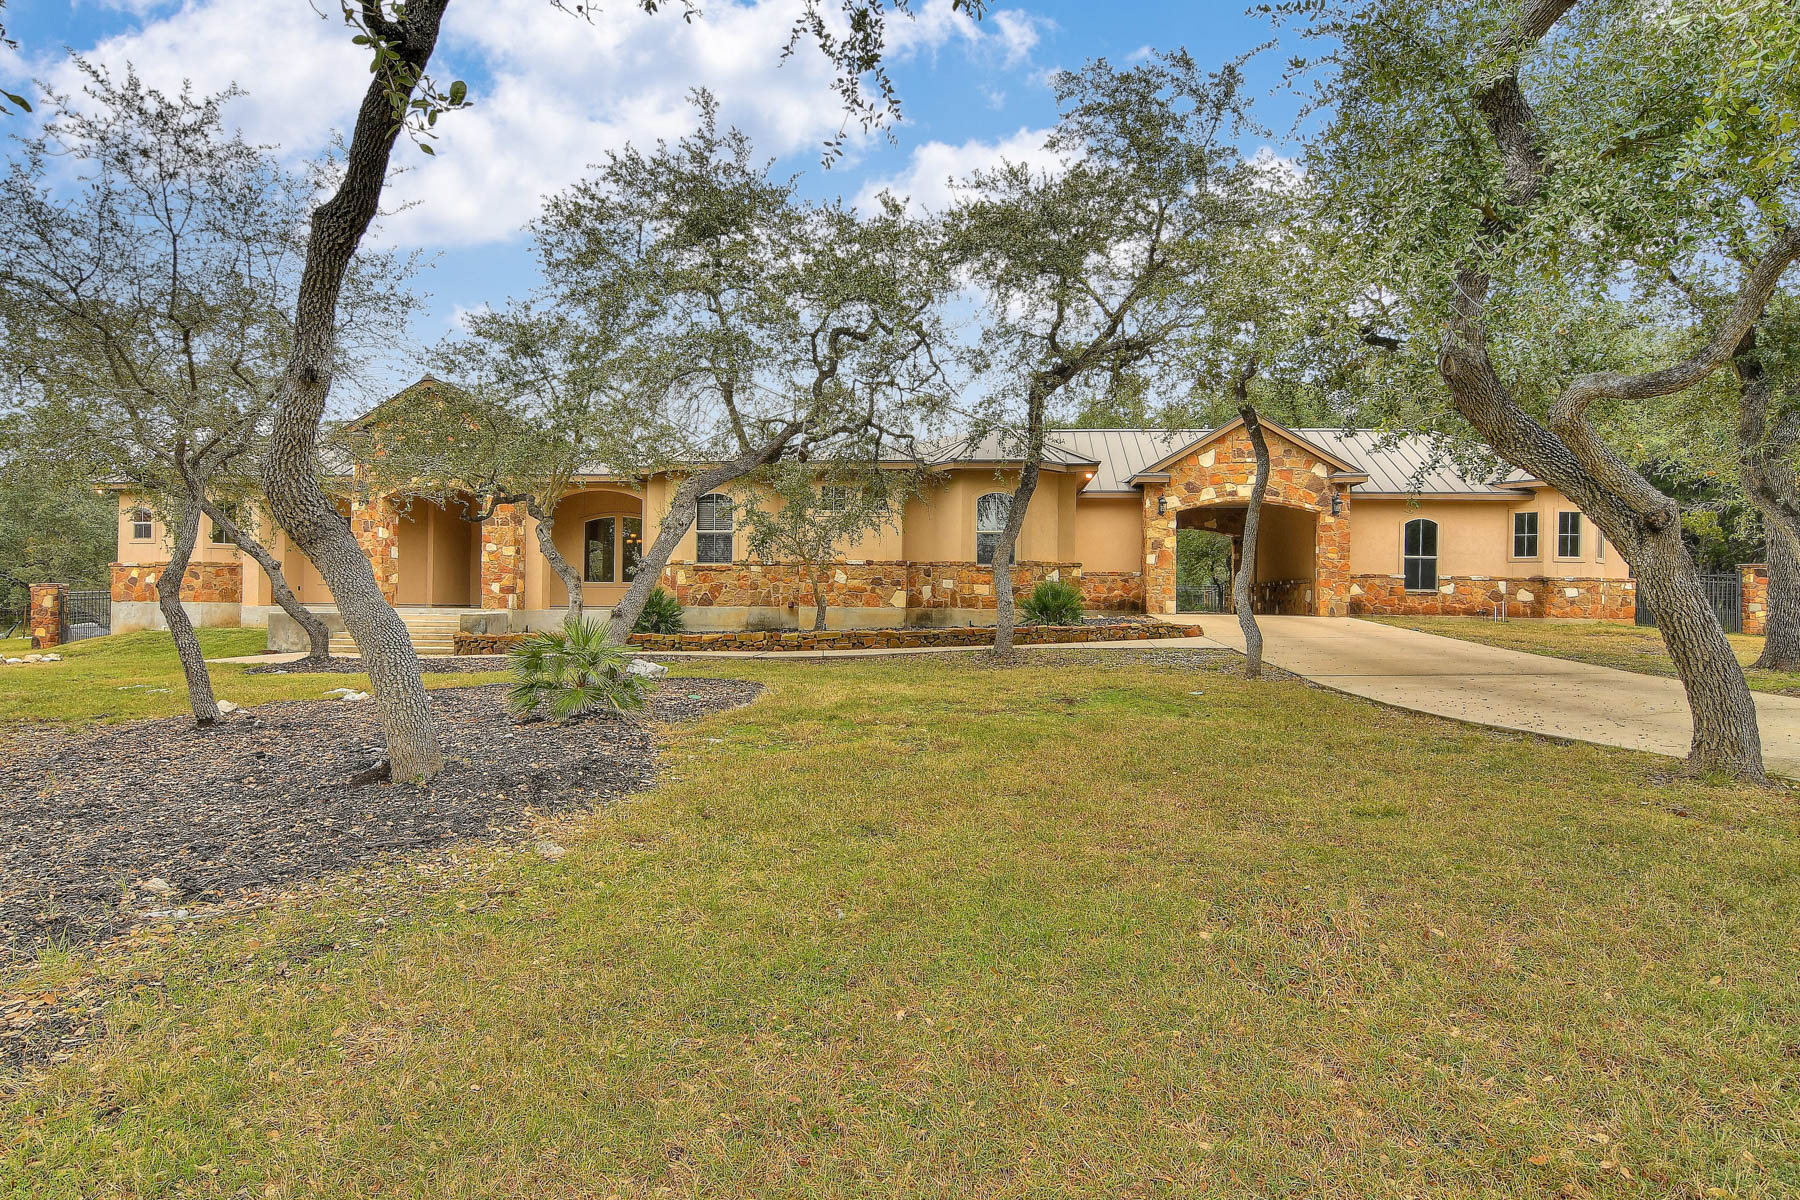 Single Family Home for Sale at Stunning Tuscan Masterpiece in Rockwall Ranch 10107 Steinig Link New Braunfels, Texas 78132 United States